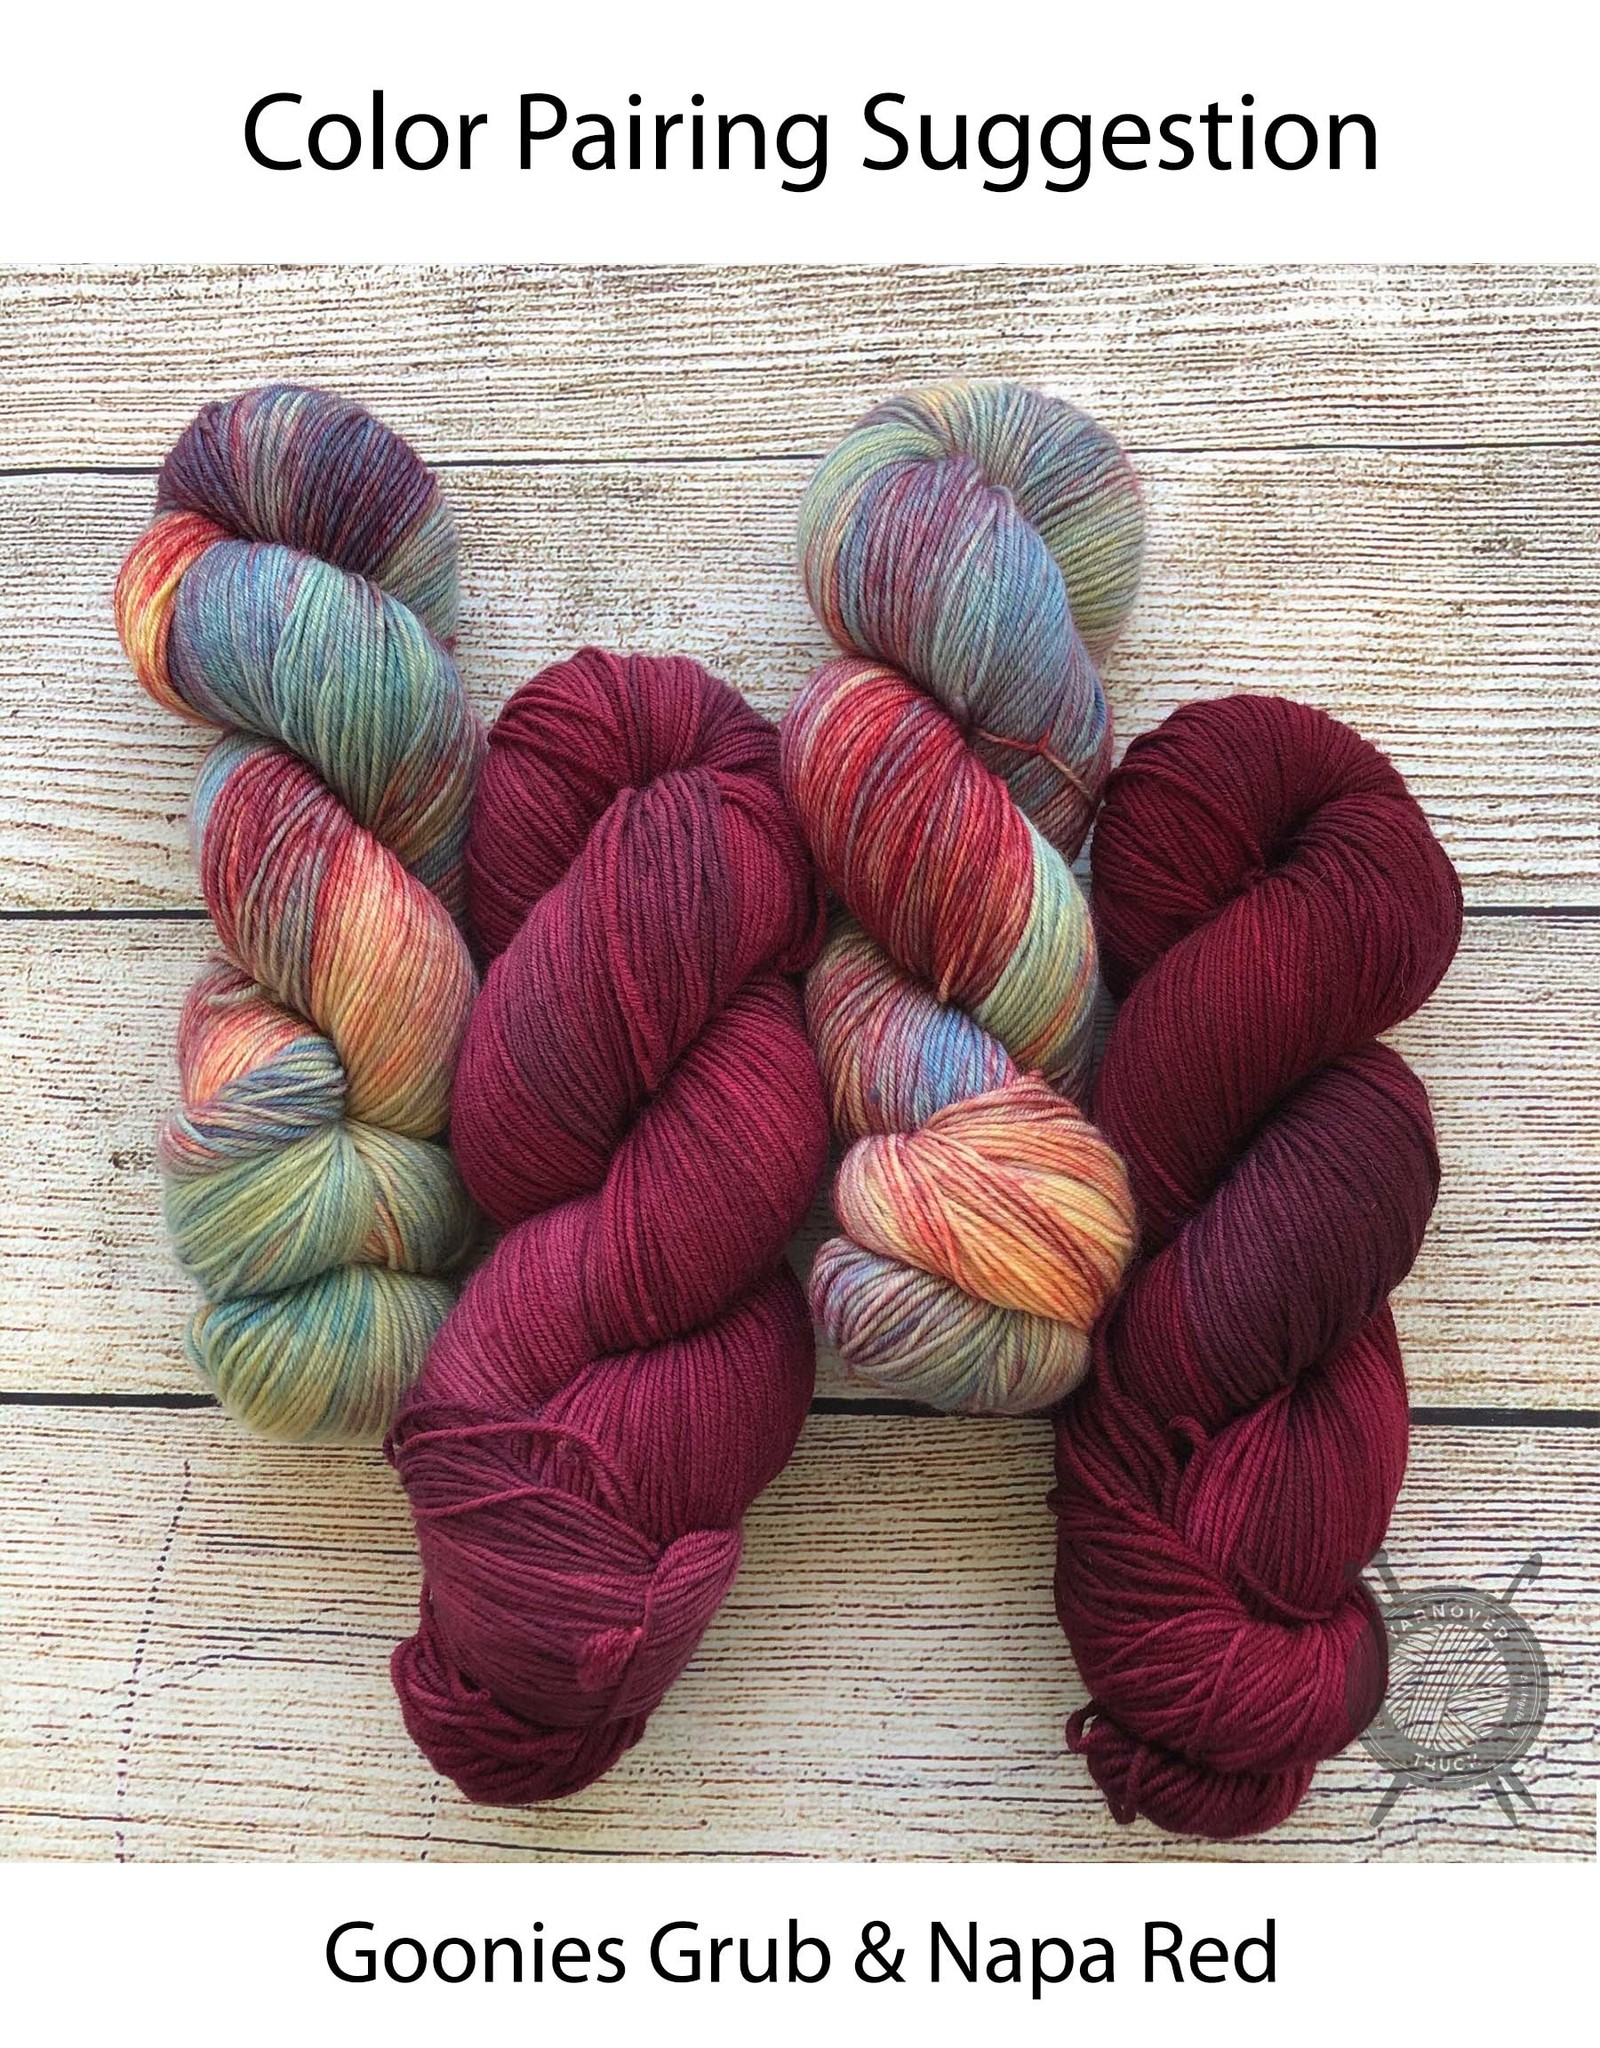 Candy Skein Goonies Grub on Yummy Fingering from Candy Skein